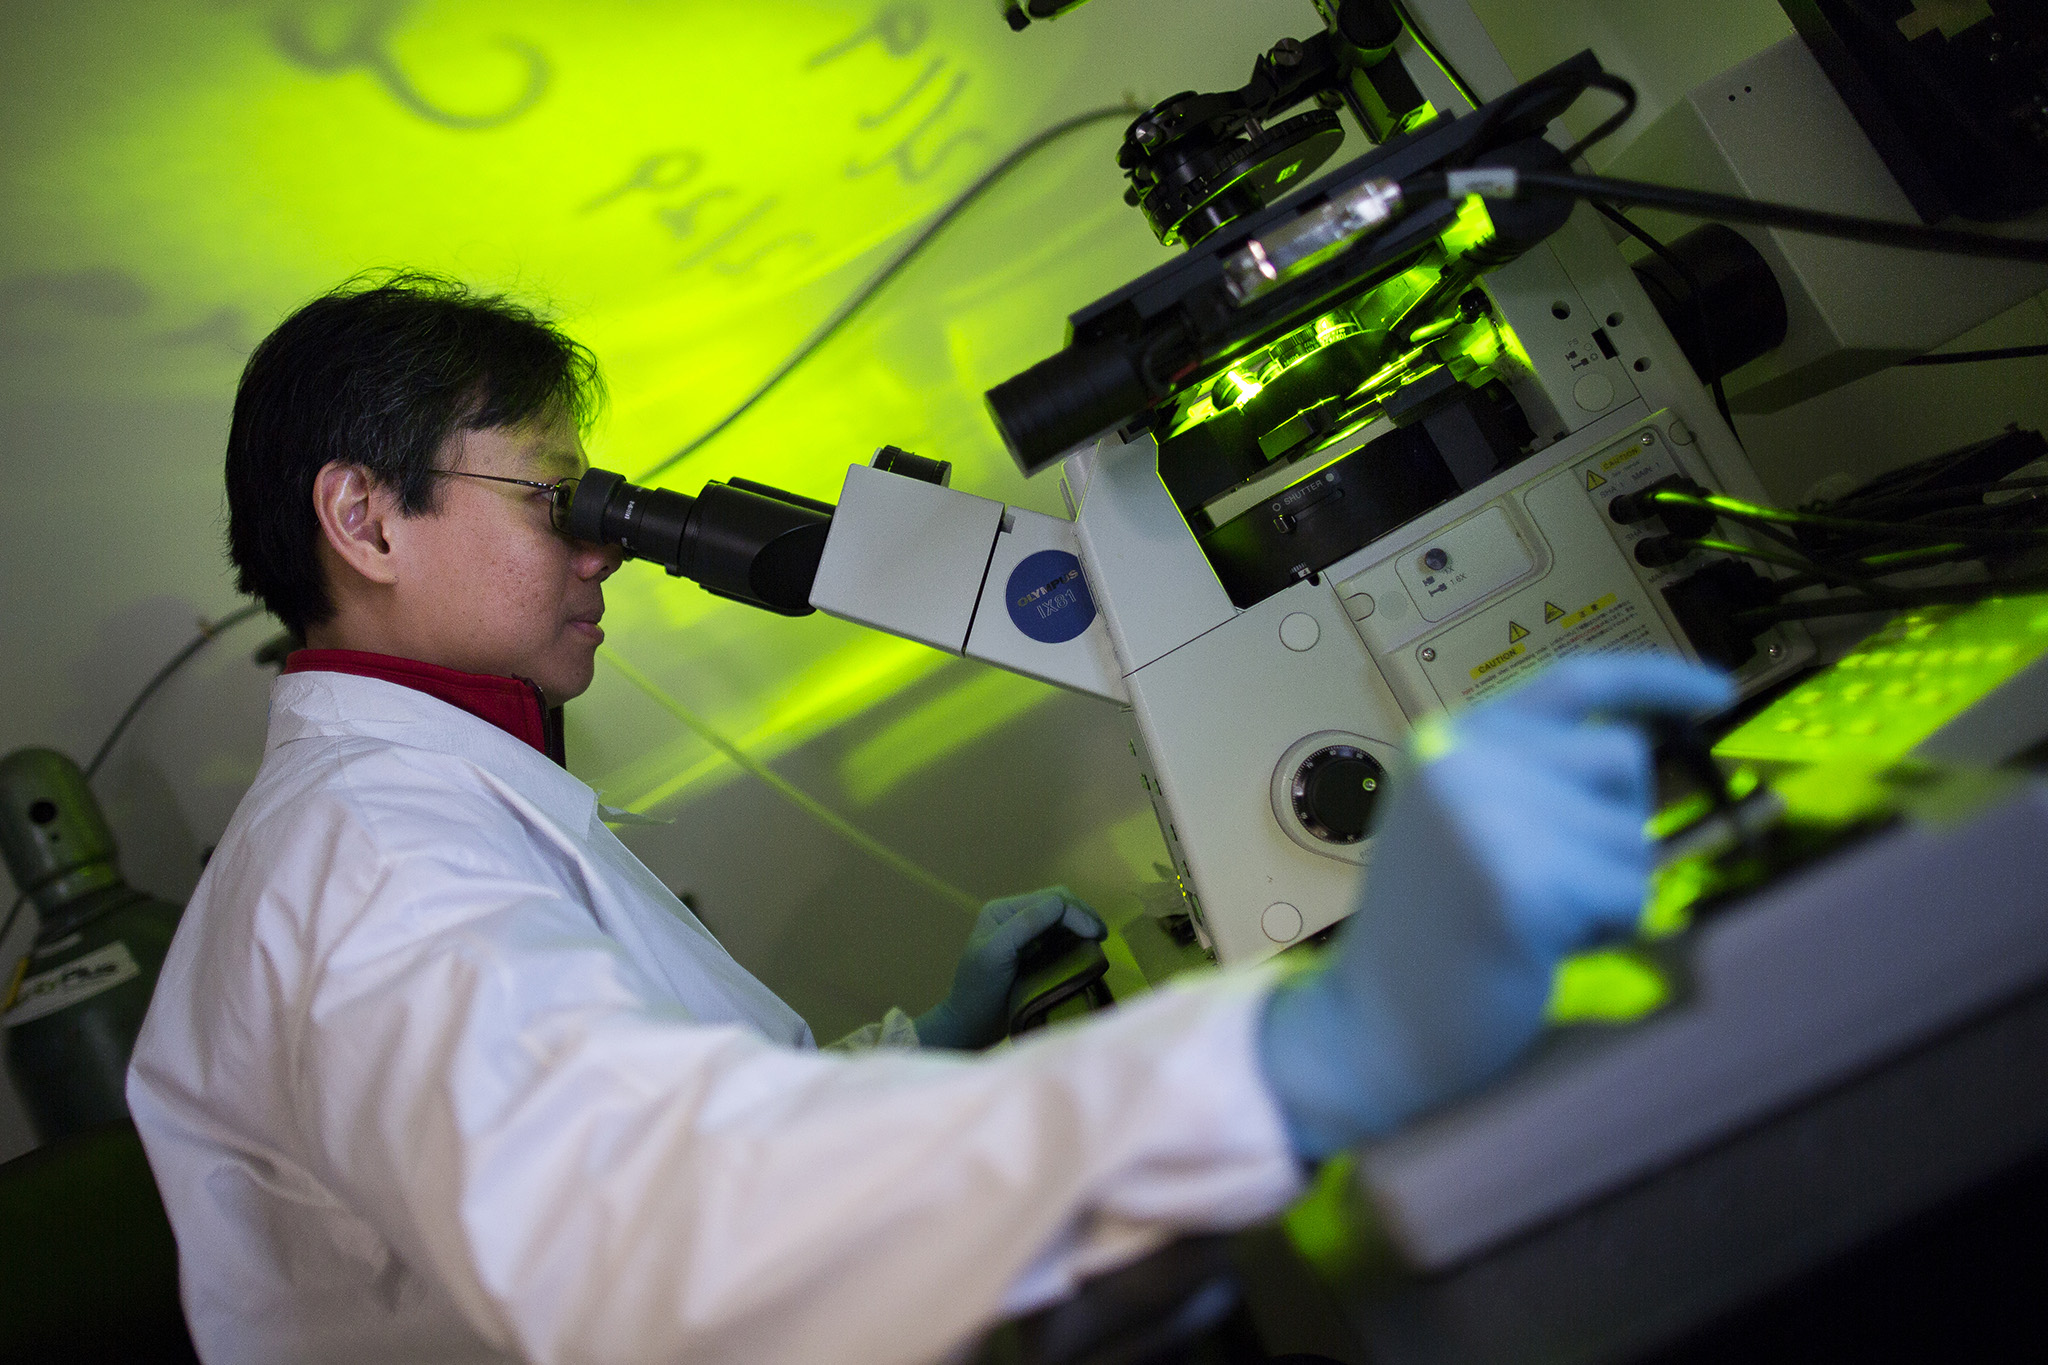 A photograph of Yen Kong, BME Research fellow, working in a laboratory.